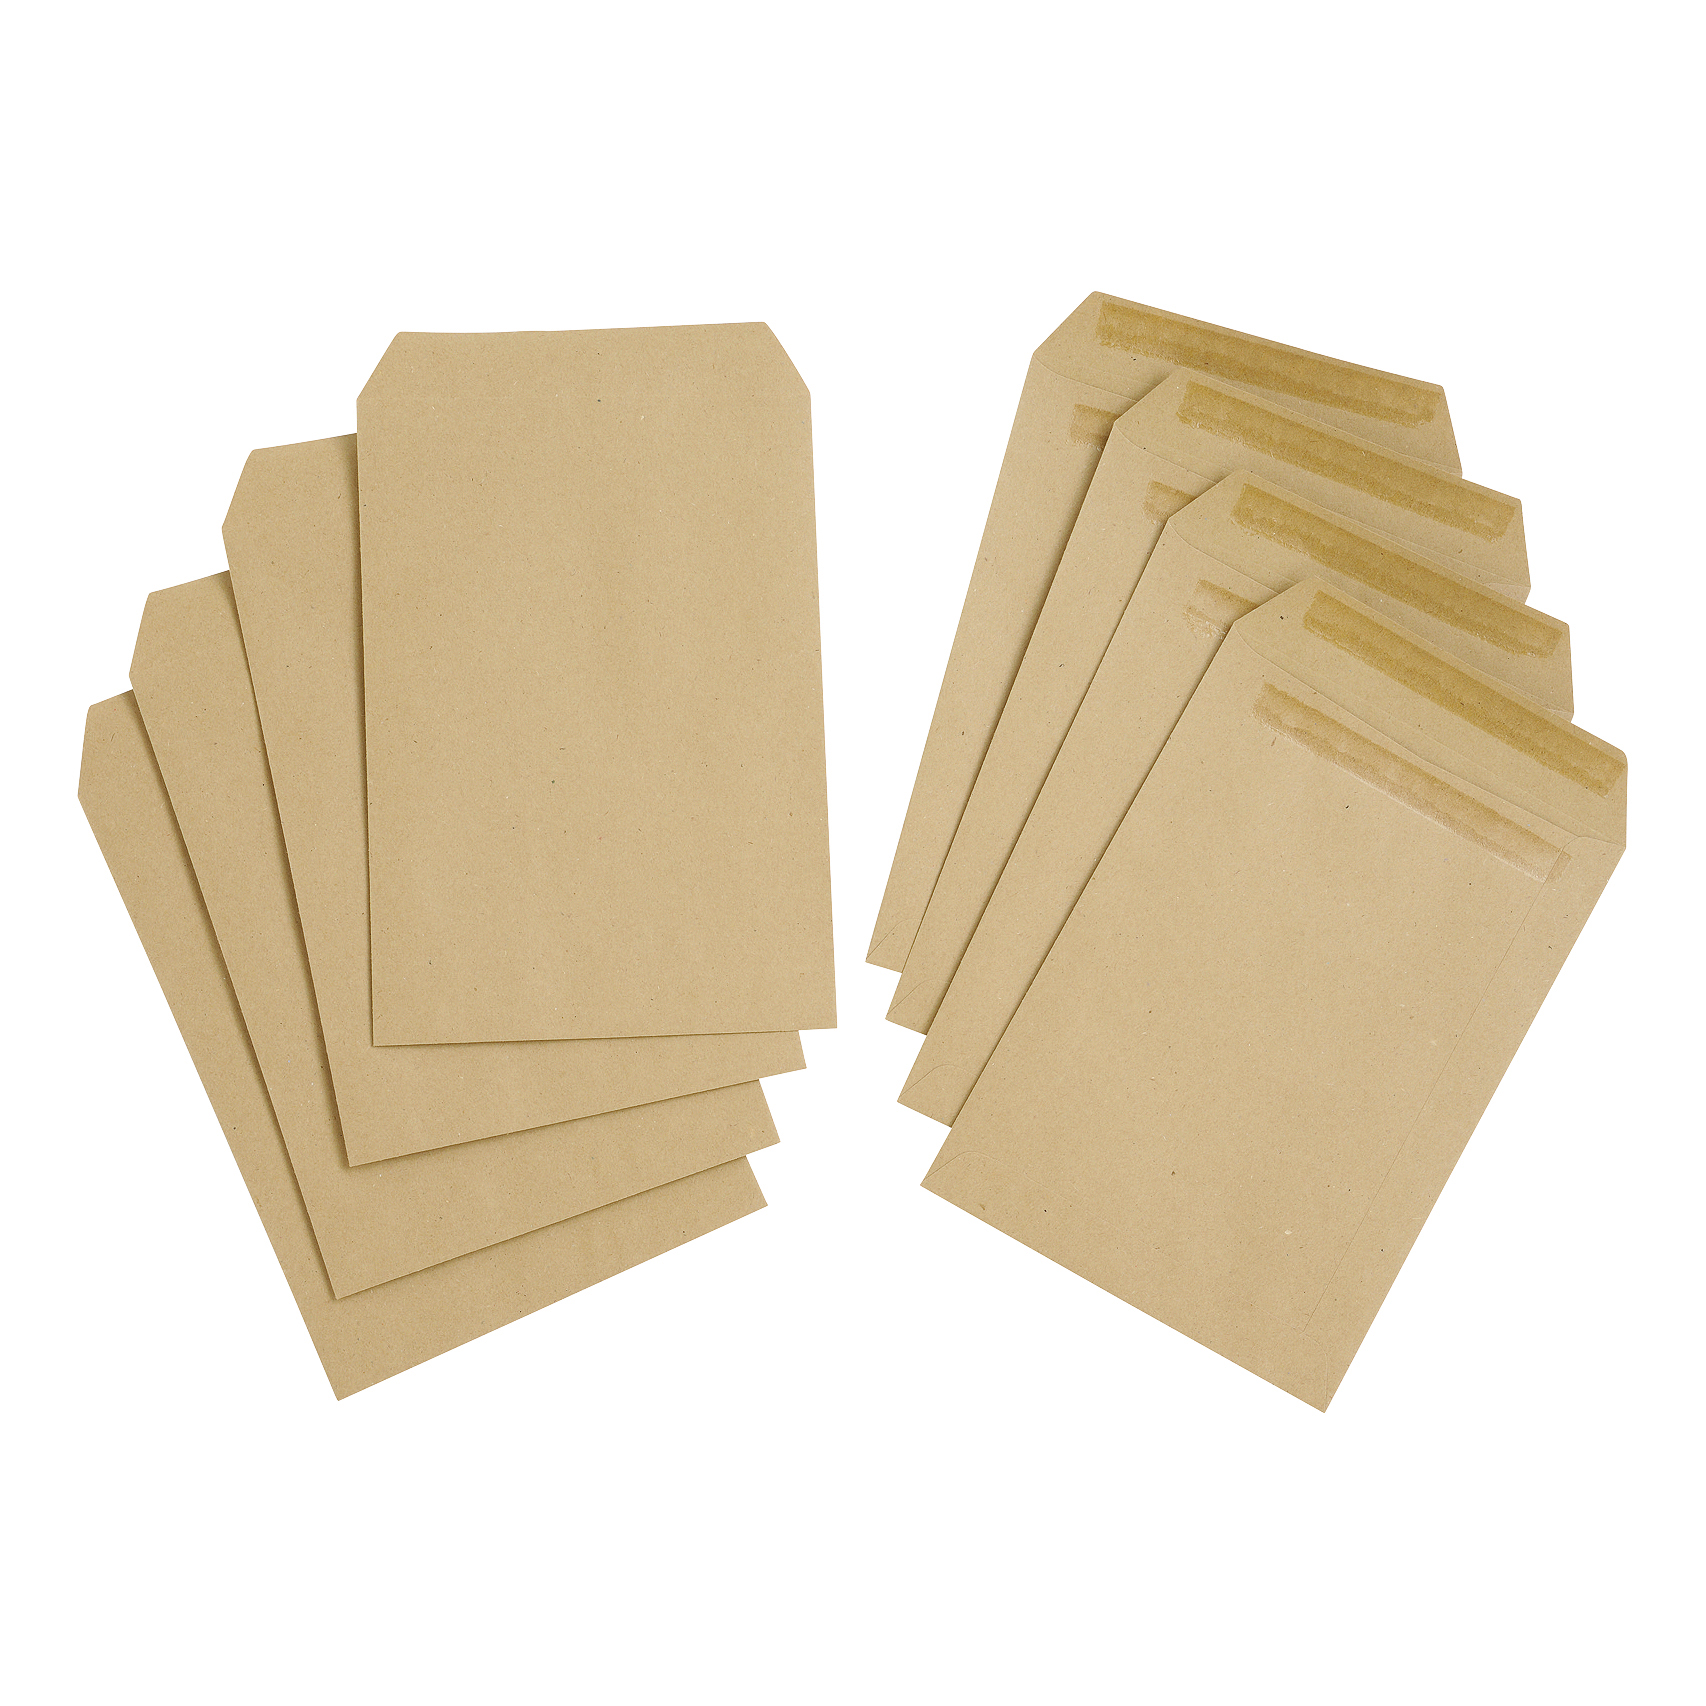 5 Star Value Envelope C5 Pocket Self Seal 80gsm Plain Manilla Pack 500